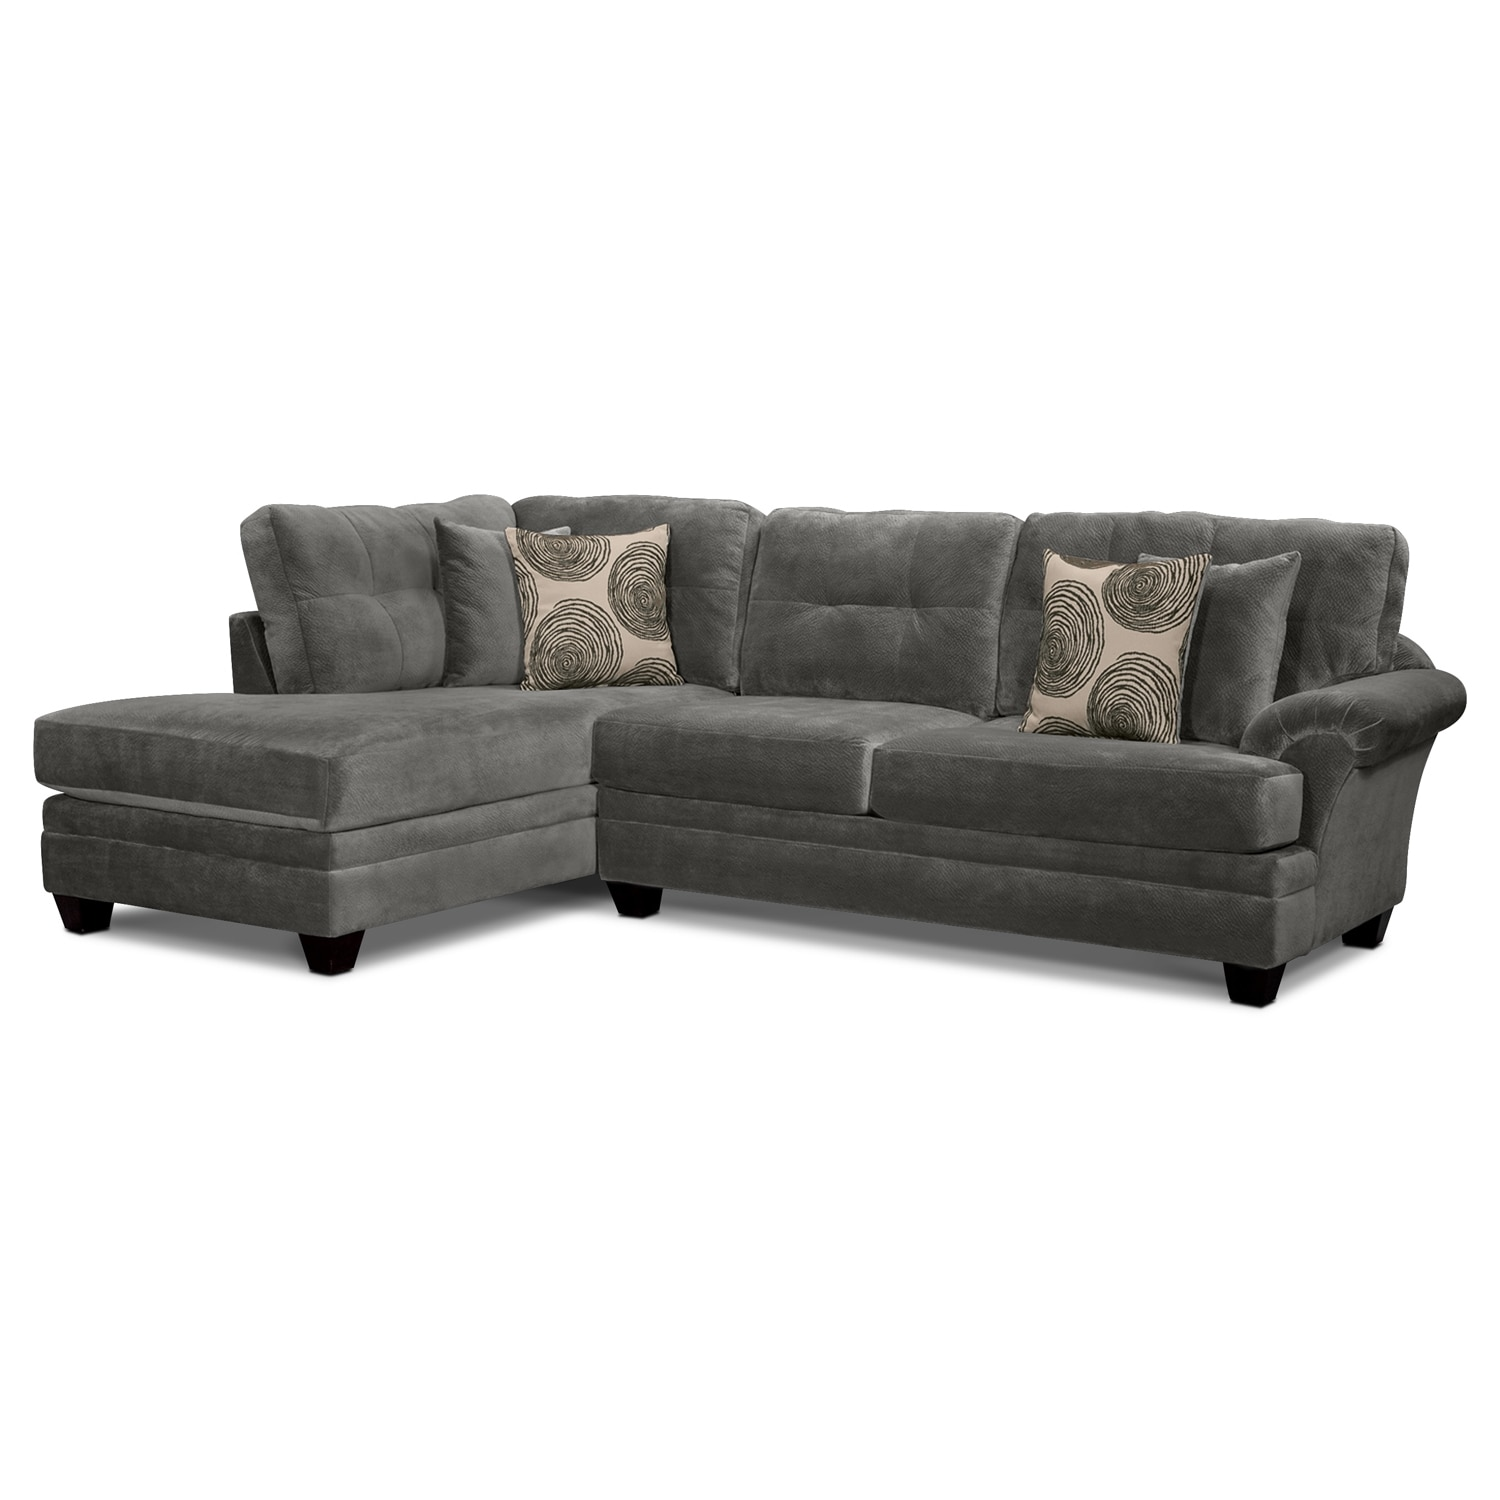 Cordelle 2-Piece Left-Facing Chaise Sectional - Gray by Factory Outlet  sc 1 st  American Signature Furniture : 2 piece chaise sectional - Sectionals, Sofas & Couches